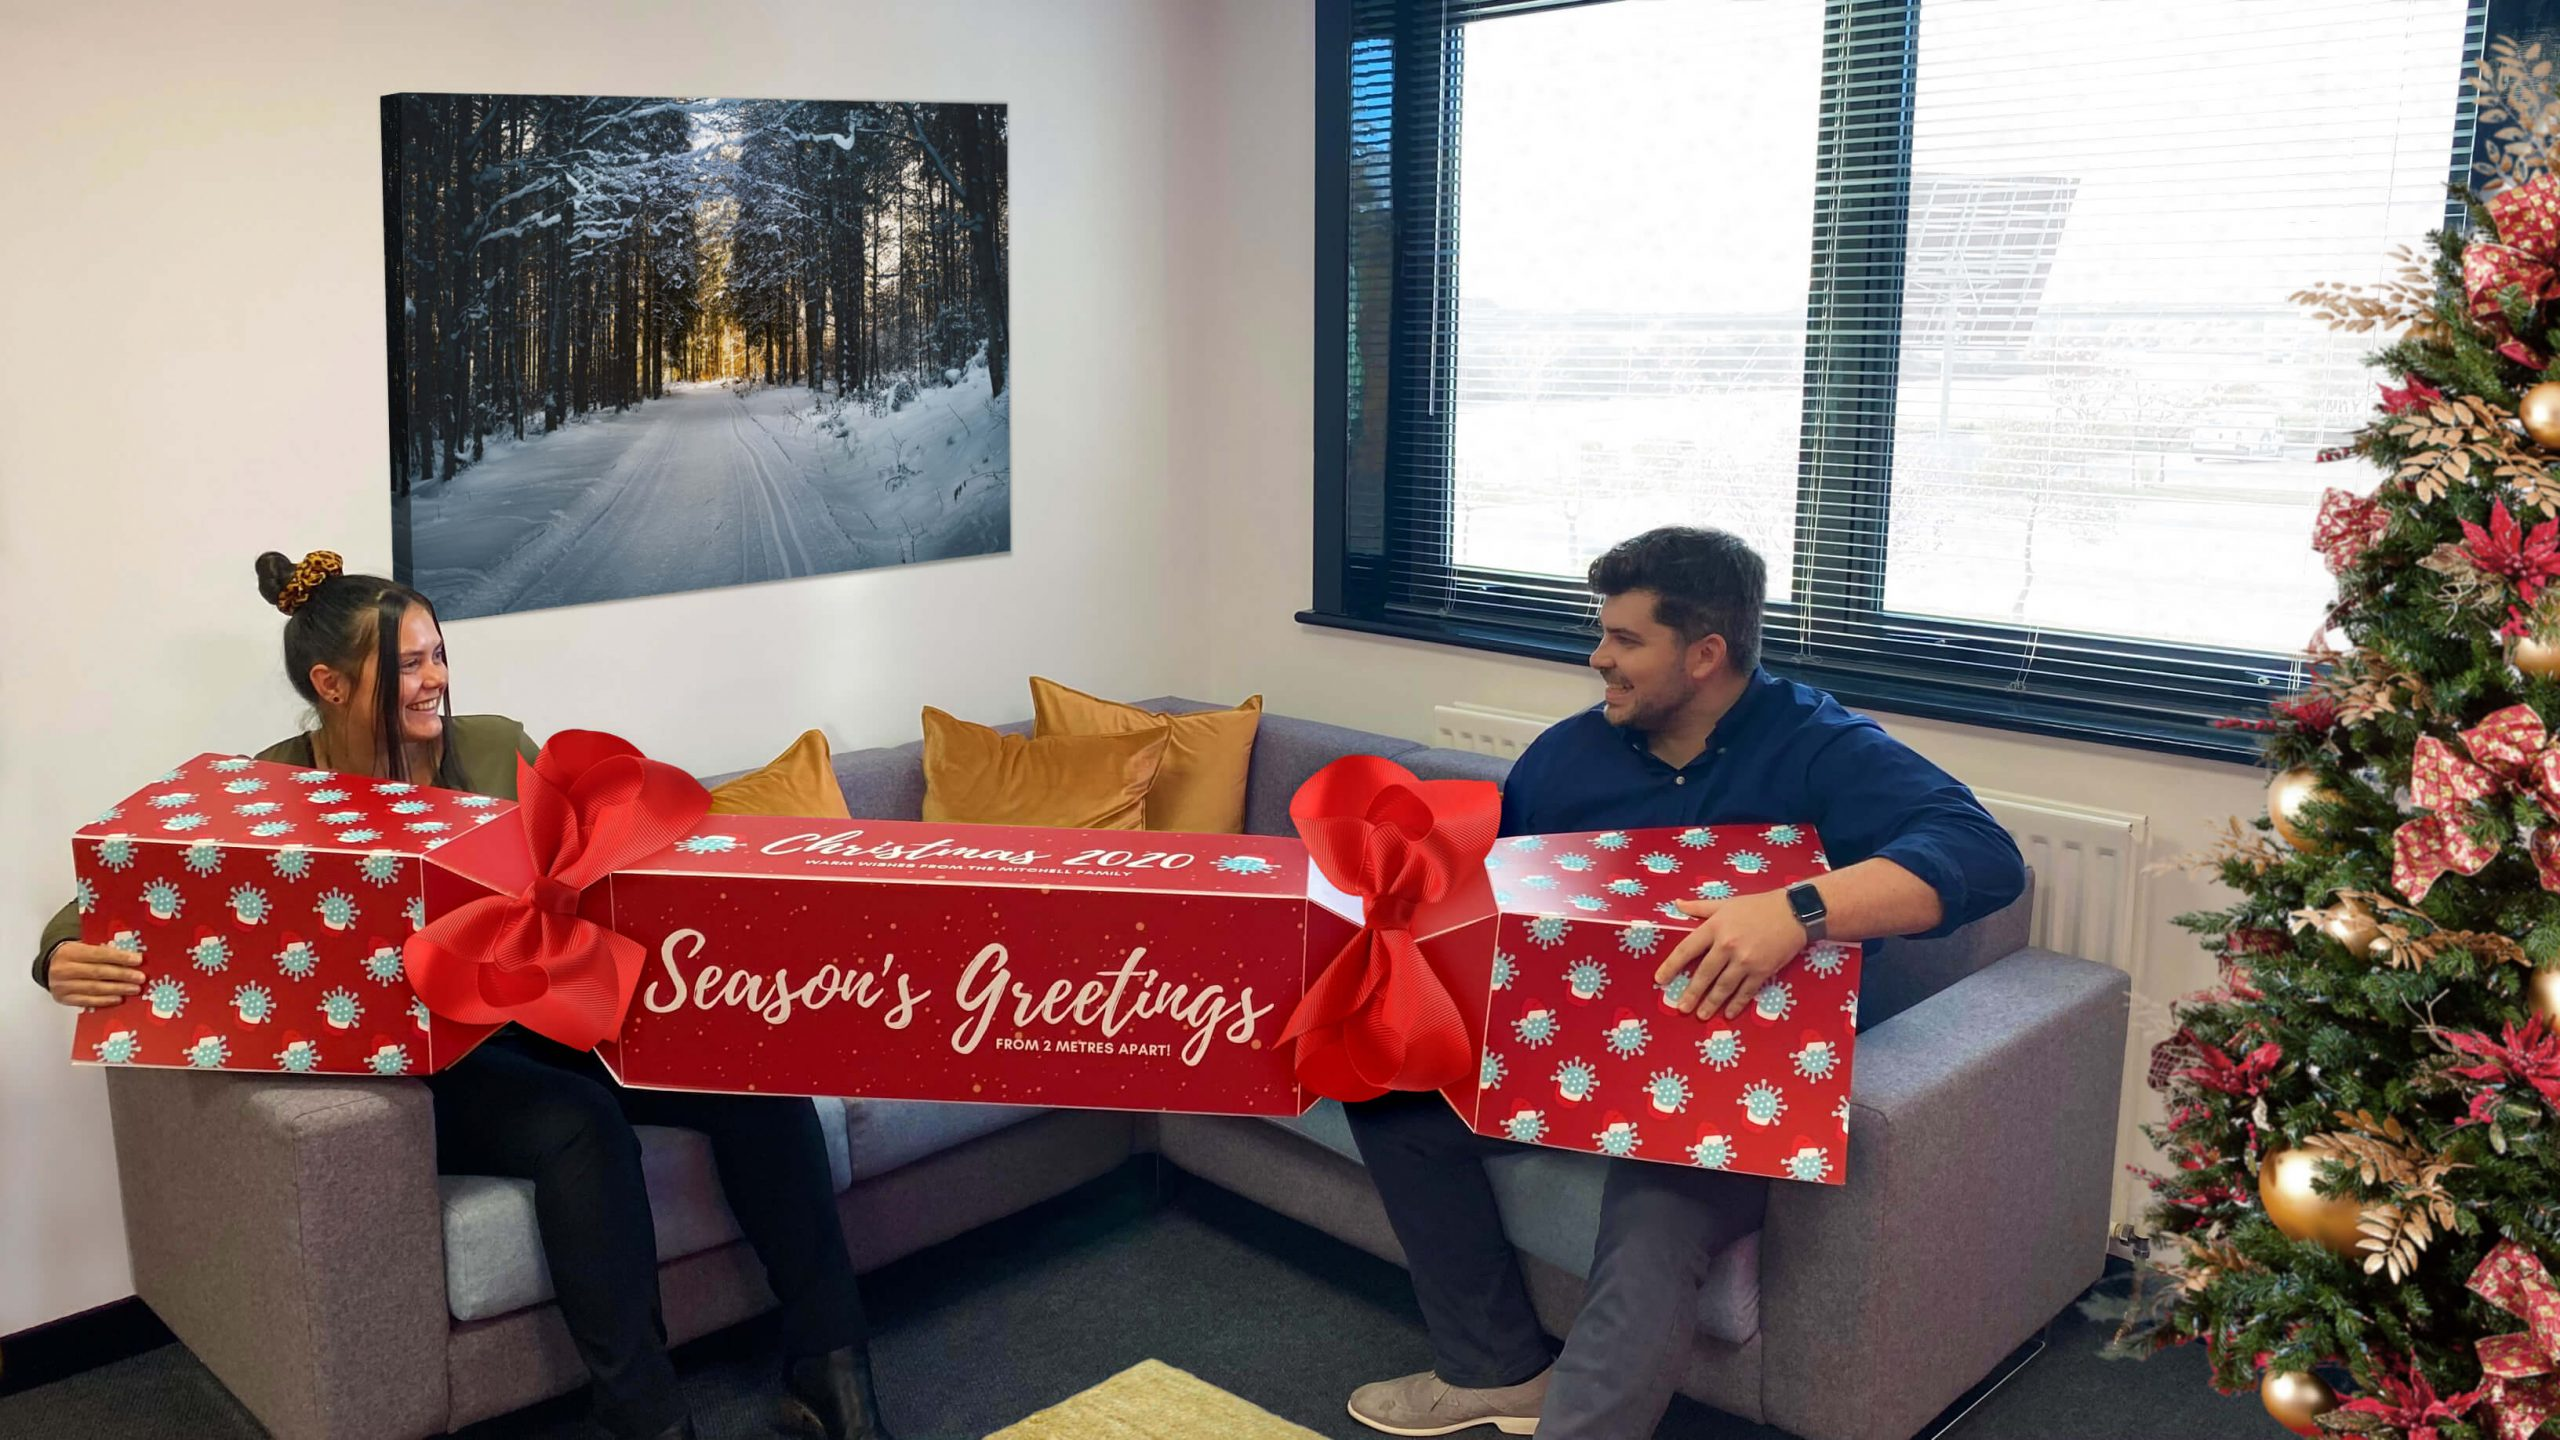 Where The Trade Buys Launch 2m Christmas Cracker To Help Families Social Distance This Christmas